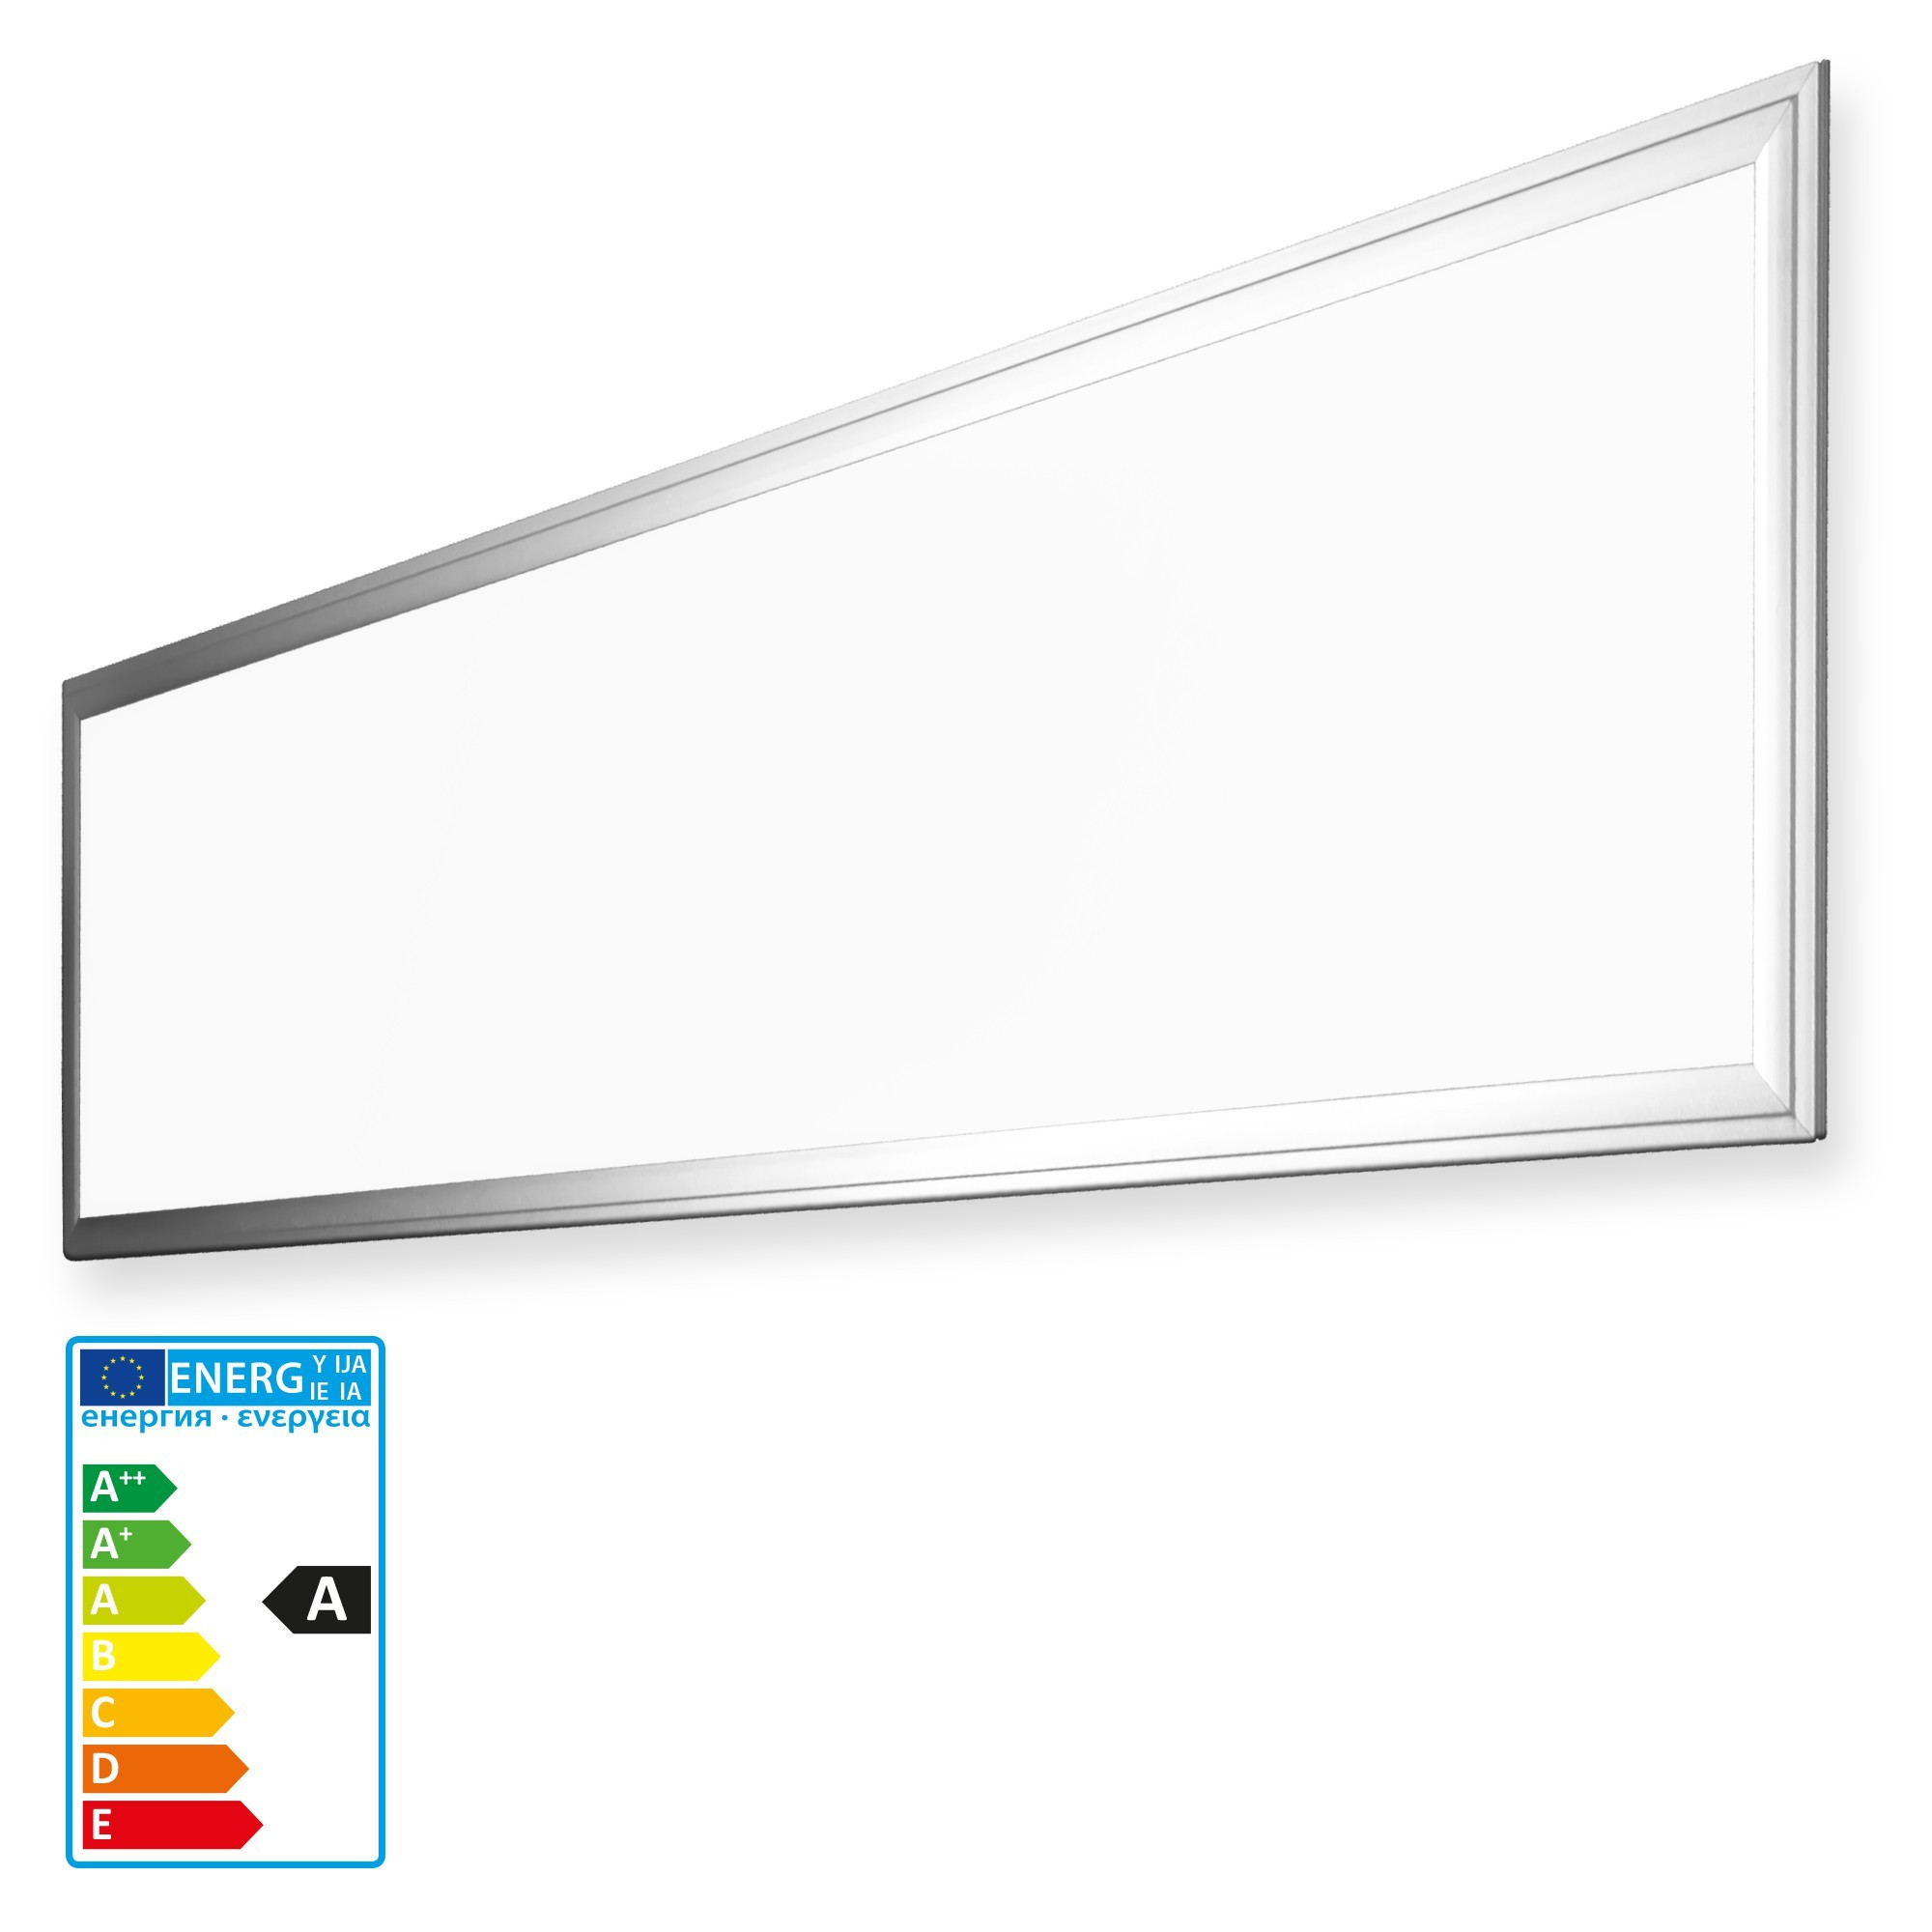 ultraslim led panel 120x30cm deckenleuchte einbauleuchte einbau leuchte strahler ebay. Black Bedroom Furniture Sets. Home Design Ideas